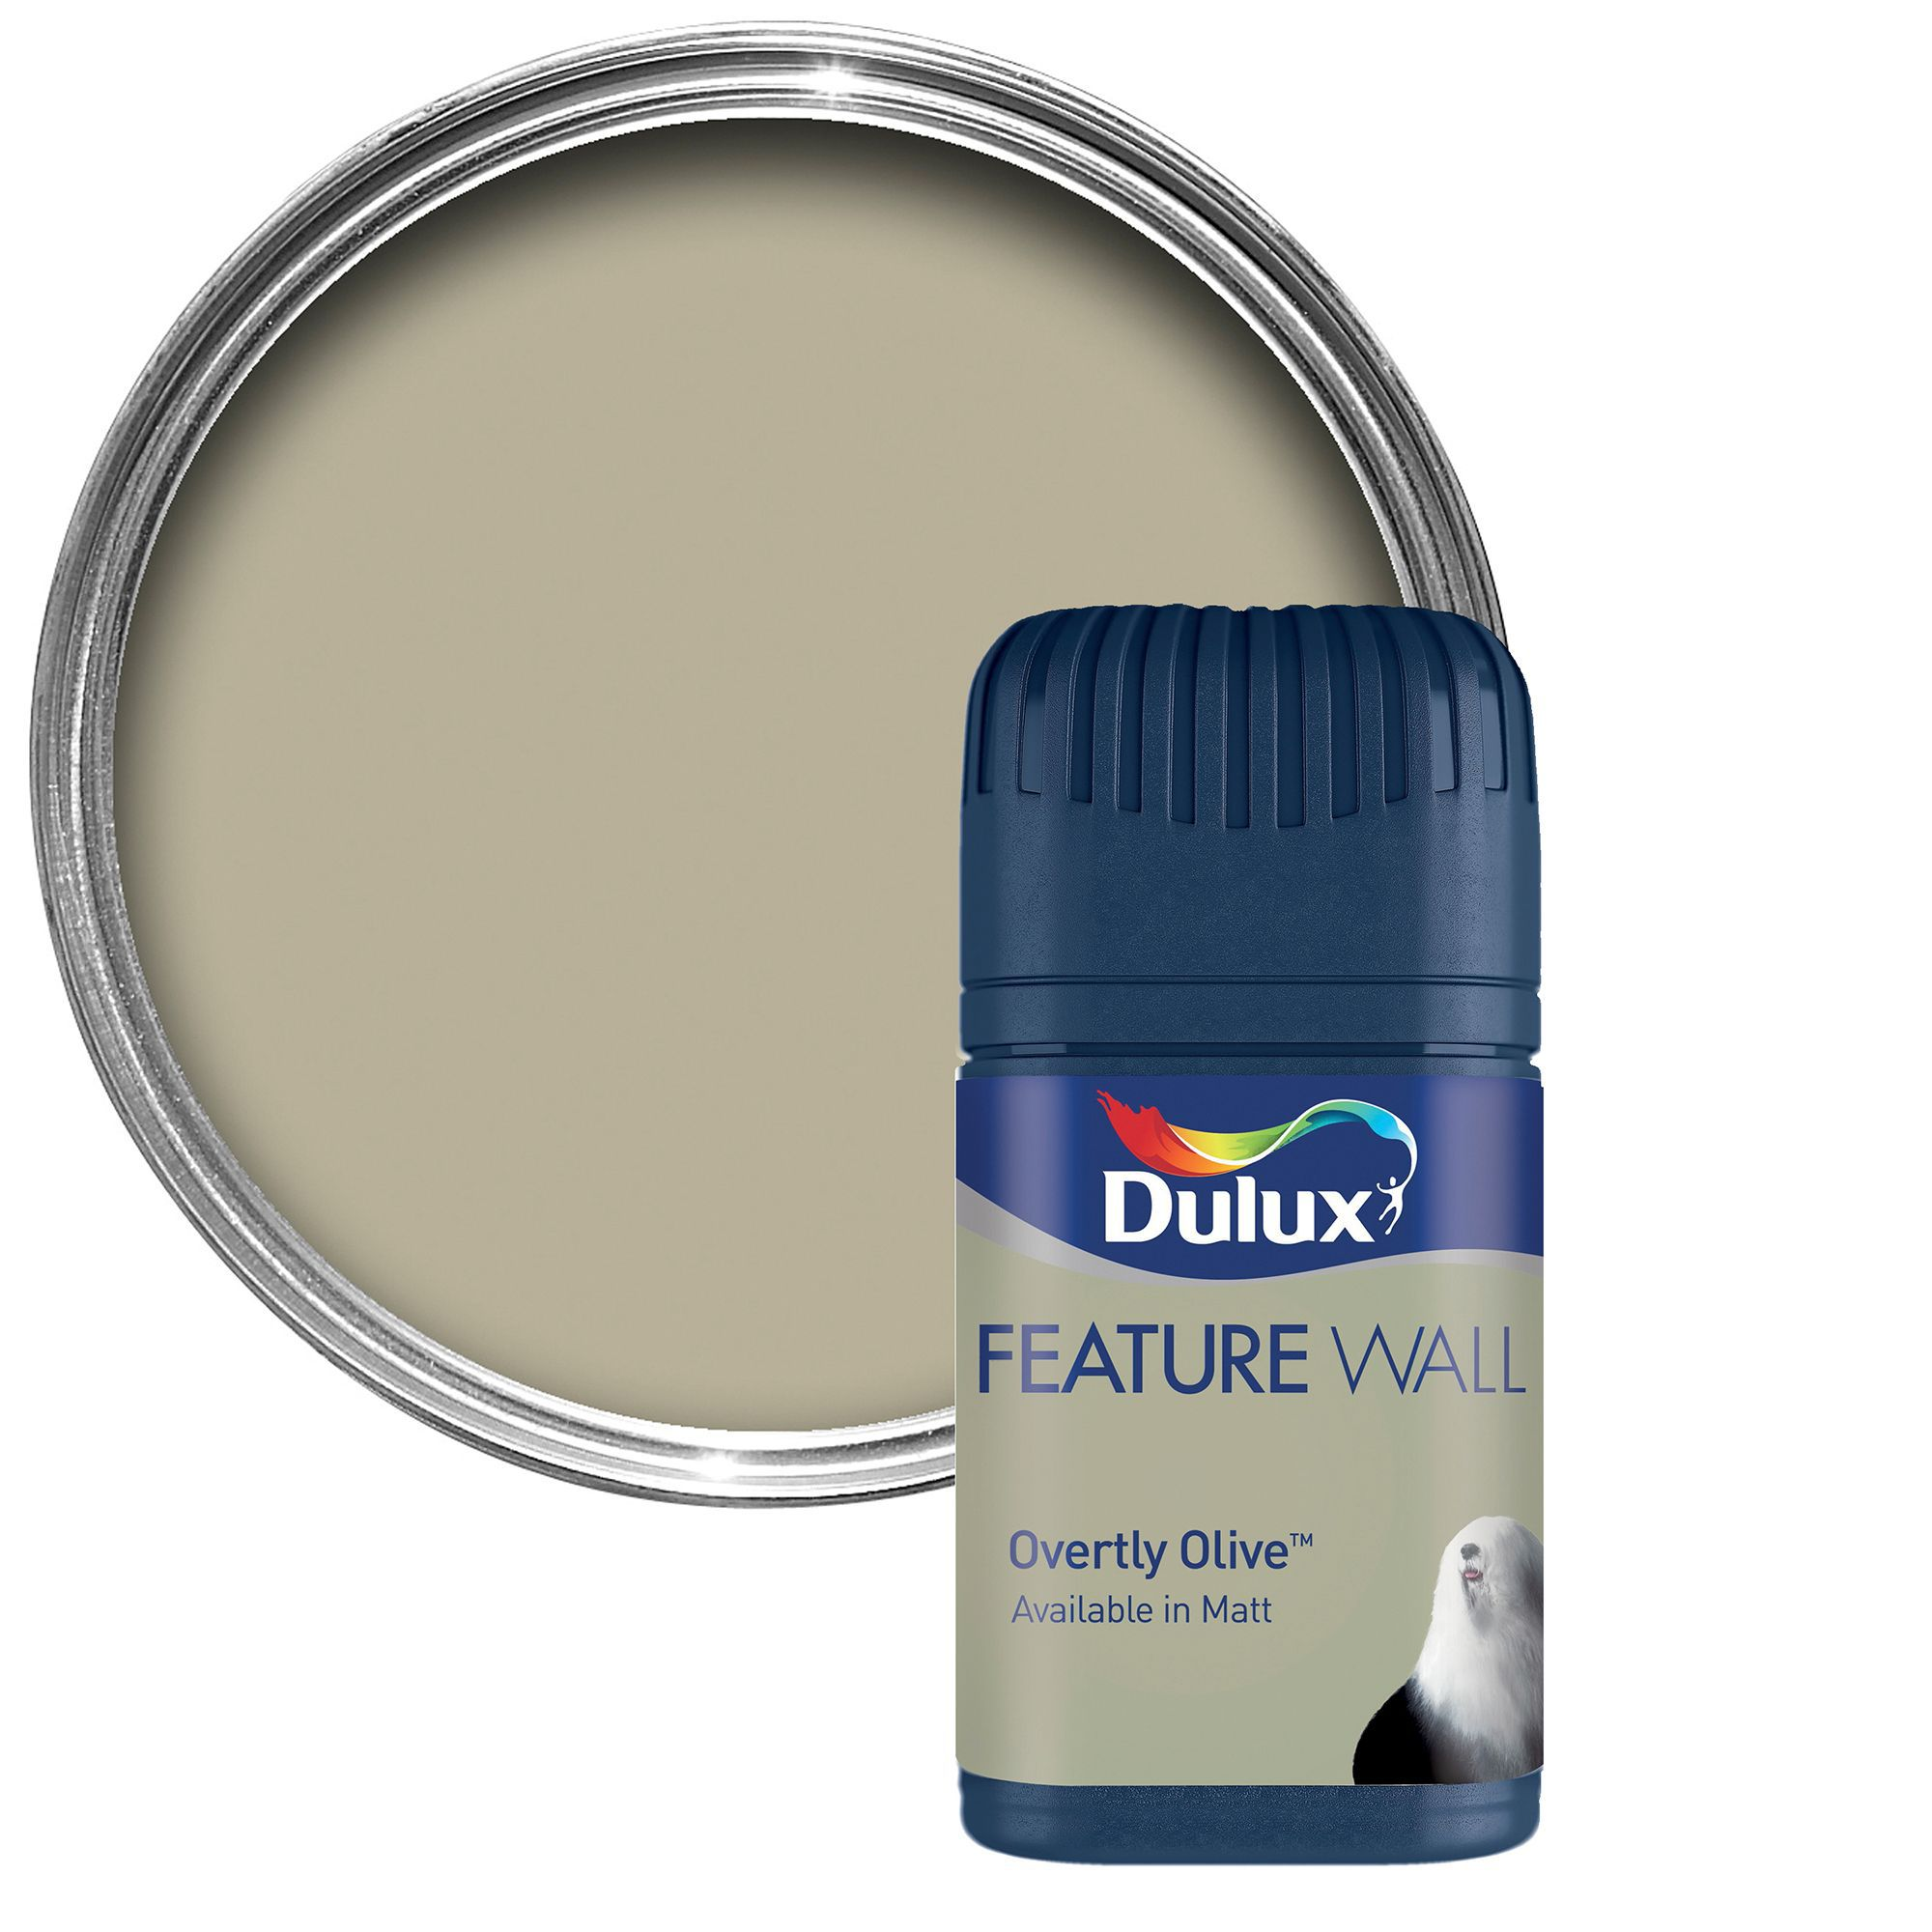 Dulux Feature Wall Overtly Olive Matt Emulsion Paint 0.05l Tester Pot